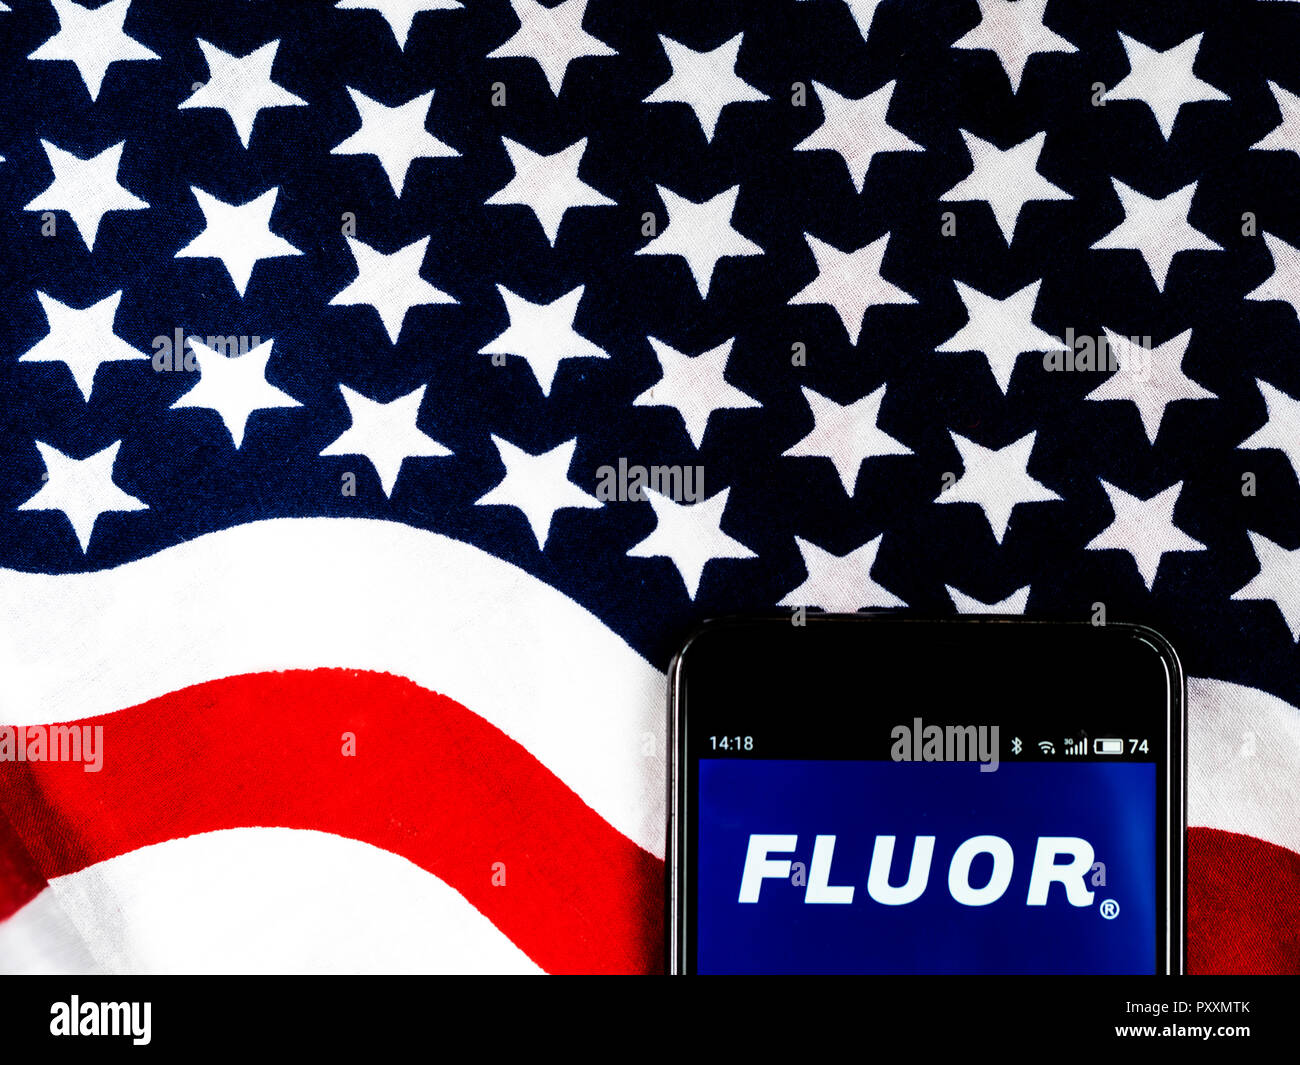 Fluor Corporation Engineering company logo seen displayed on smart